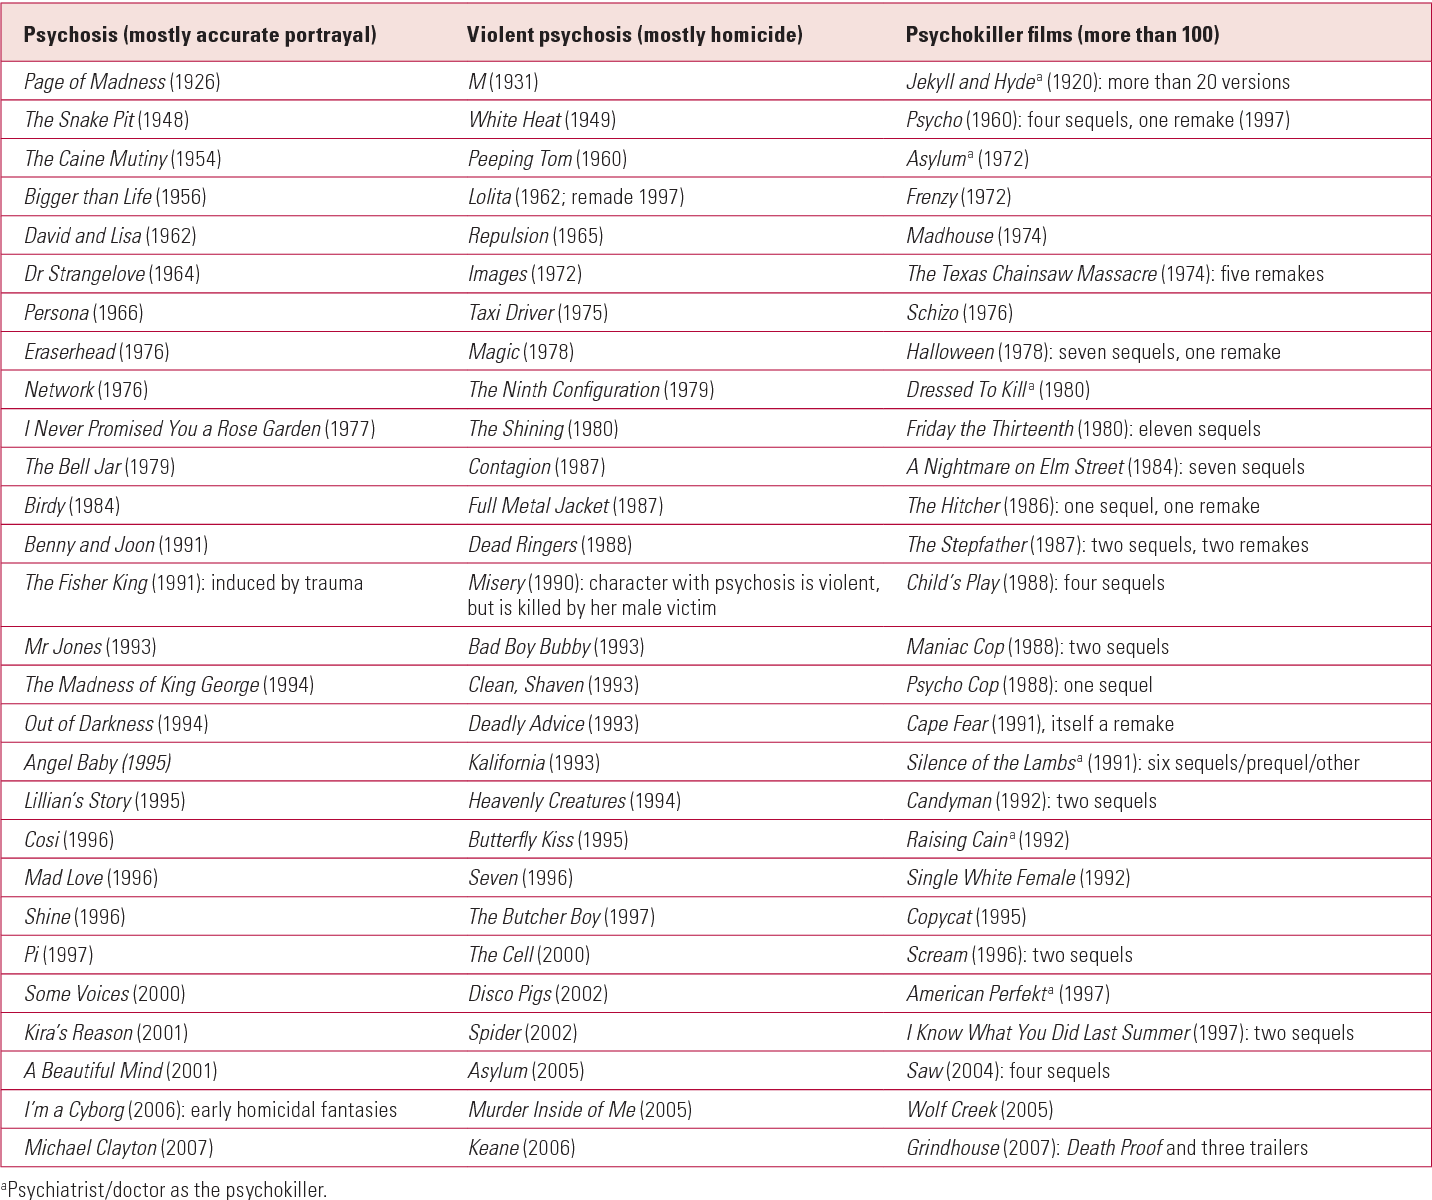 Table 6 from Why psychiatrists should watch films (or What has